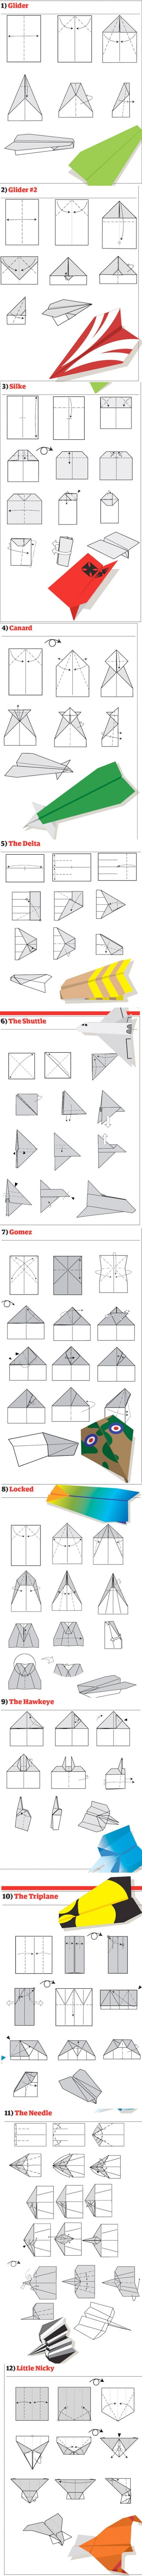 Paper airplanes. Page is in Chinese, but the illustrations are pretty self explanatory.